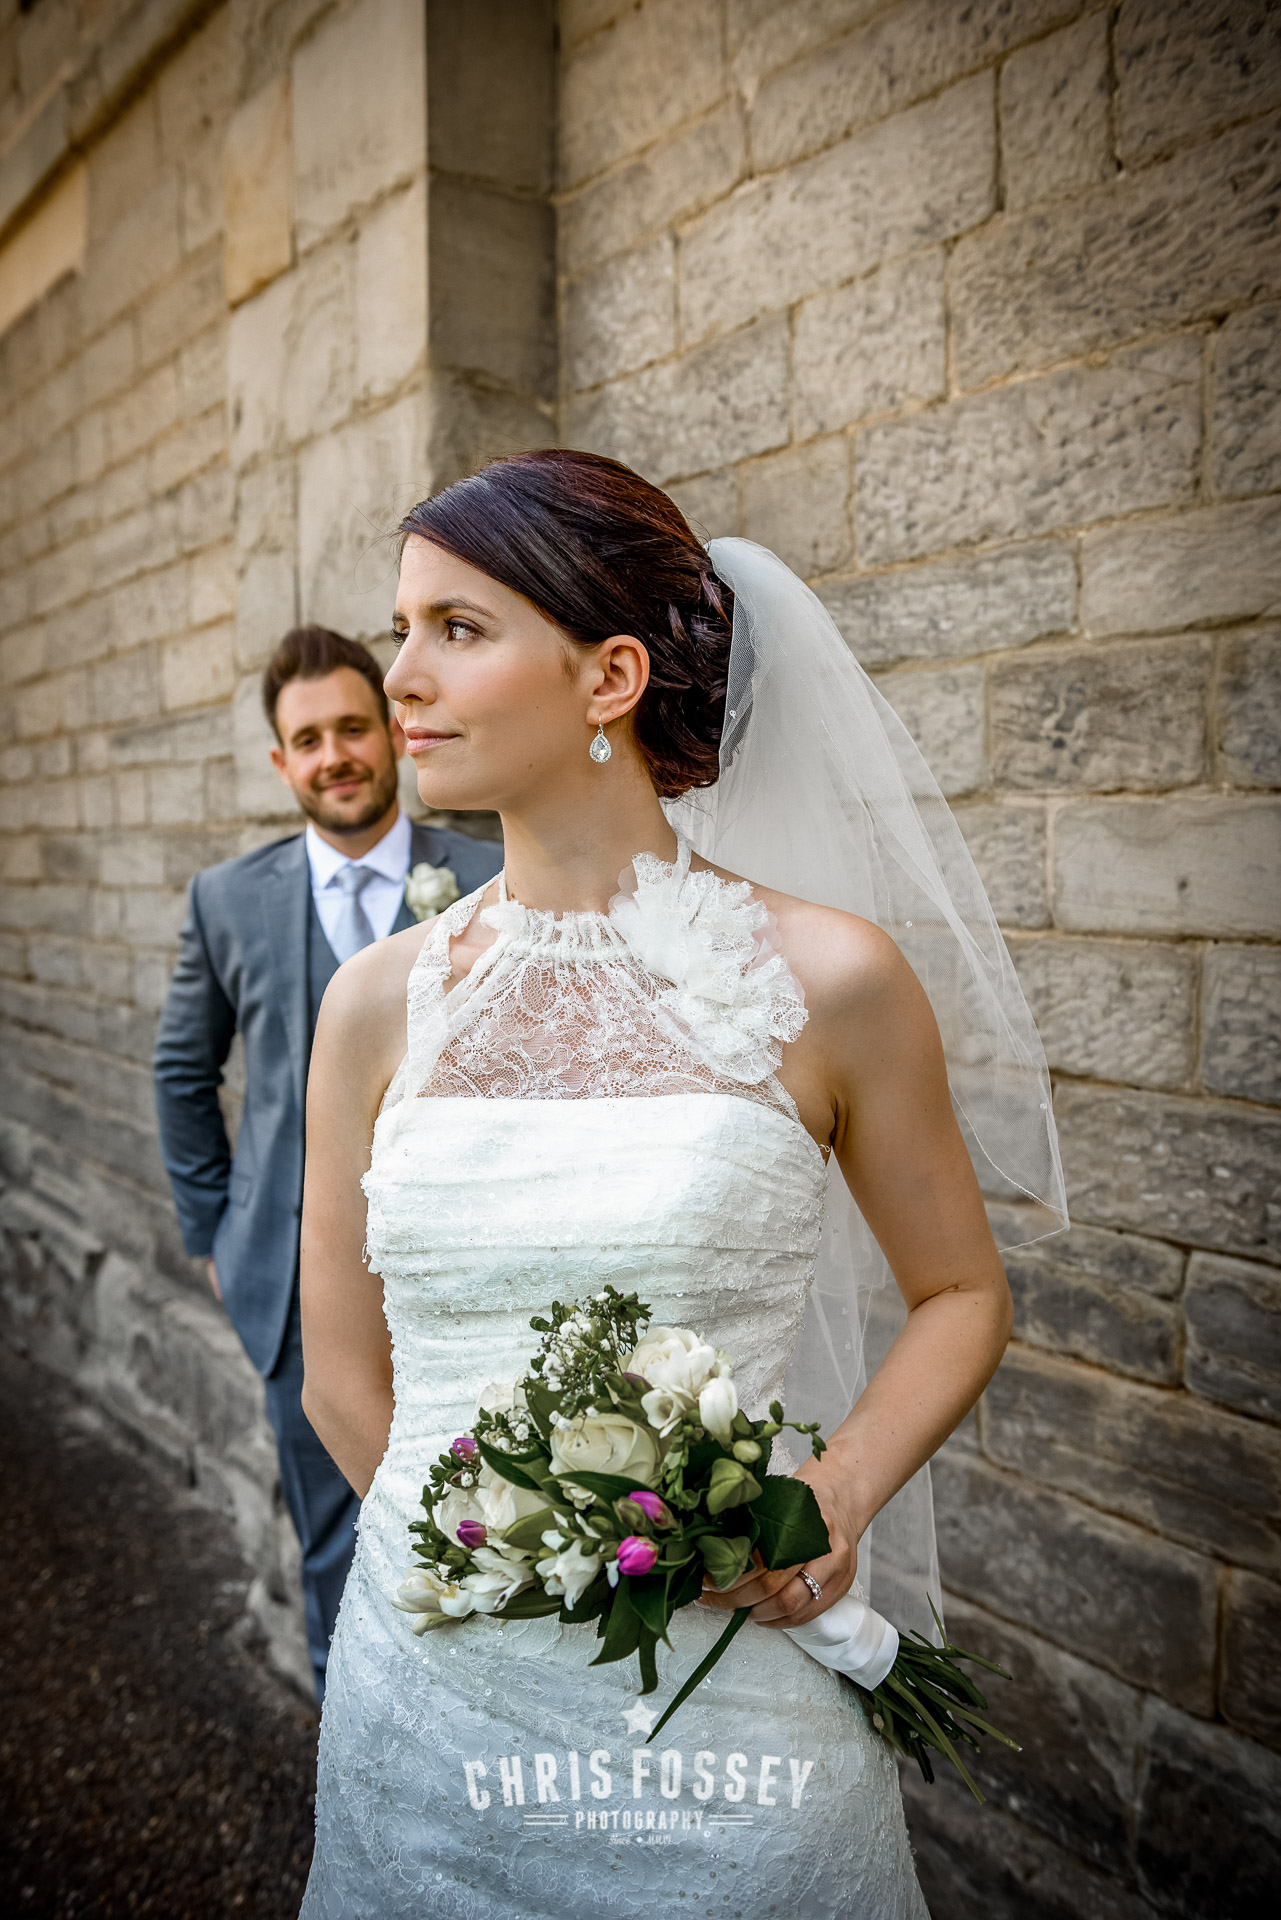 Warwickshire Wedding Photography Portfolio-Warwick Castle Wedding Photography by Chris Fossey-24